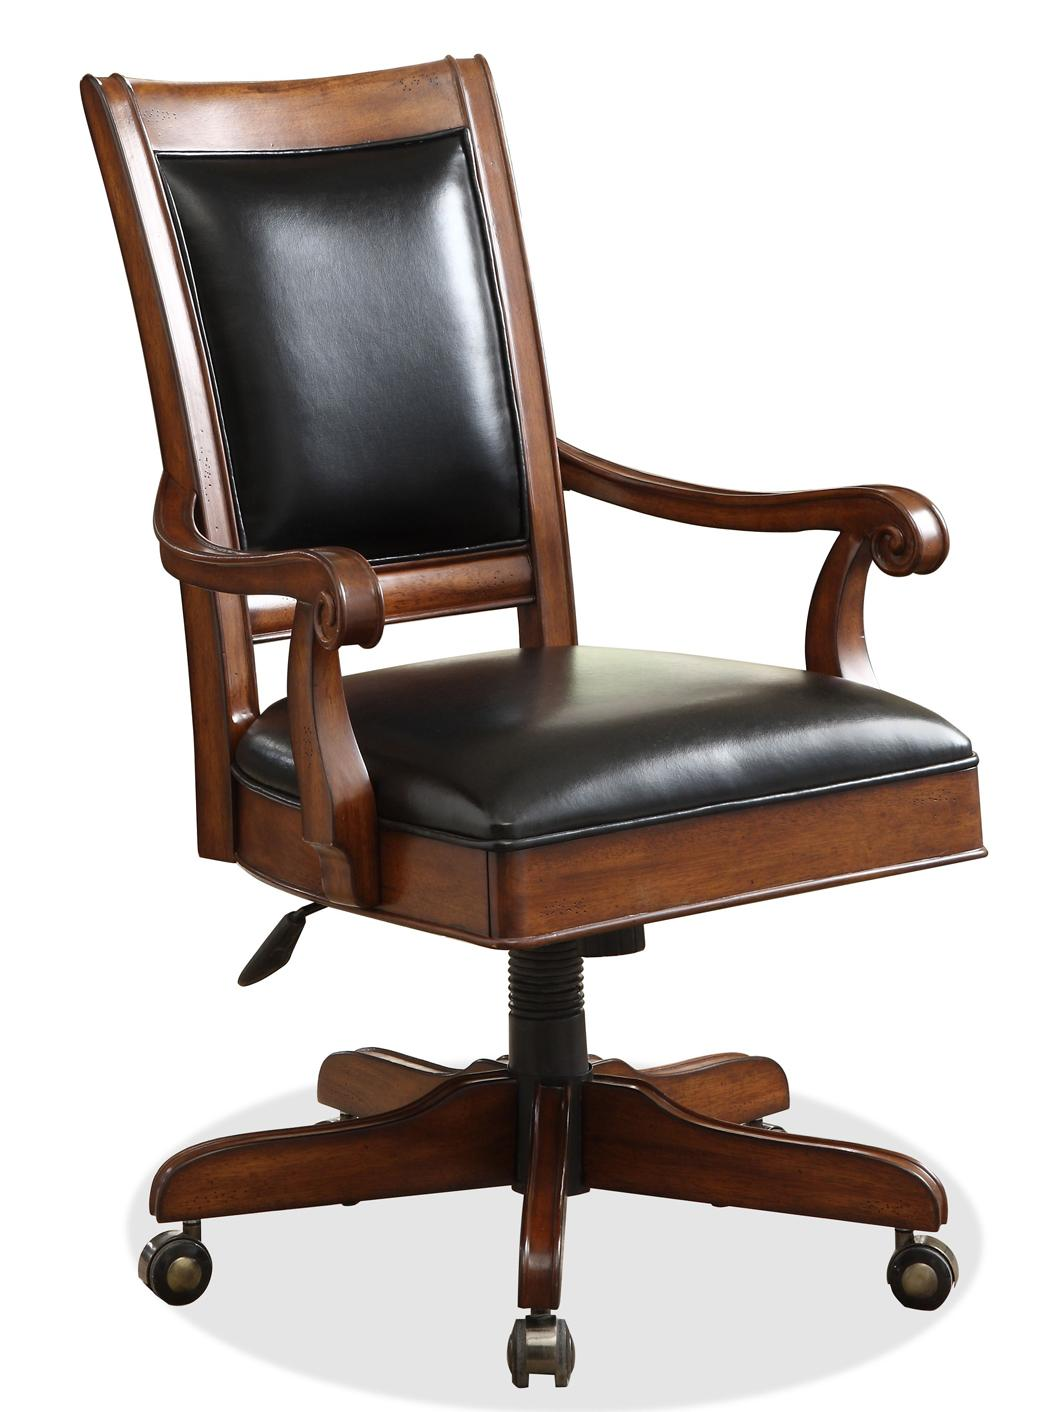 Delicieux Caster Equipped Wooden Desk Chair With Leather Covered Seat